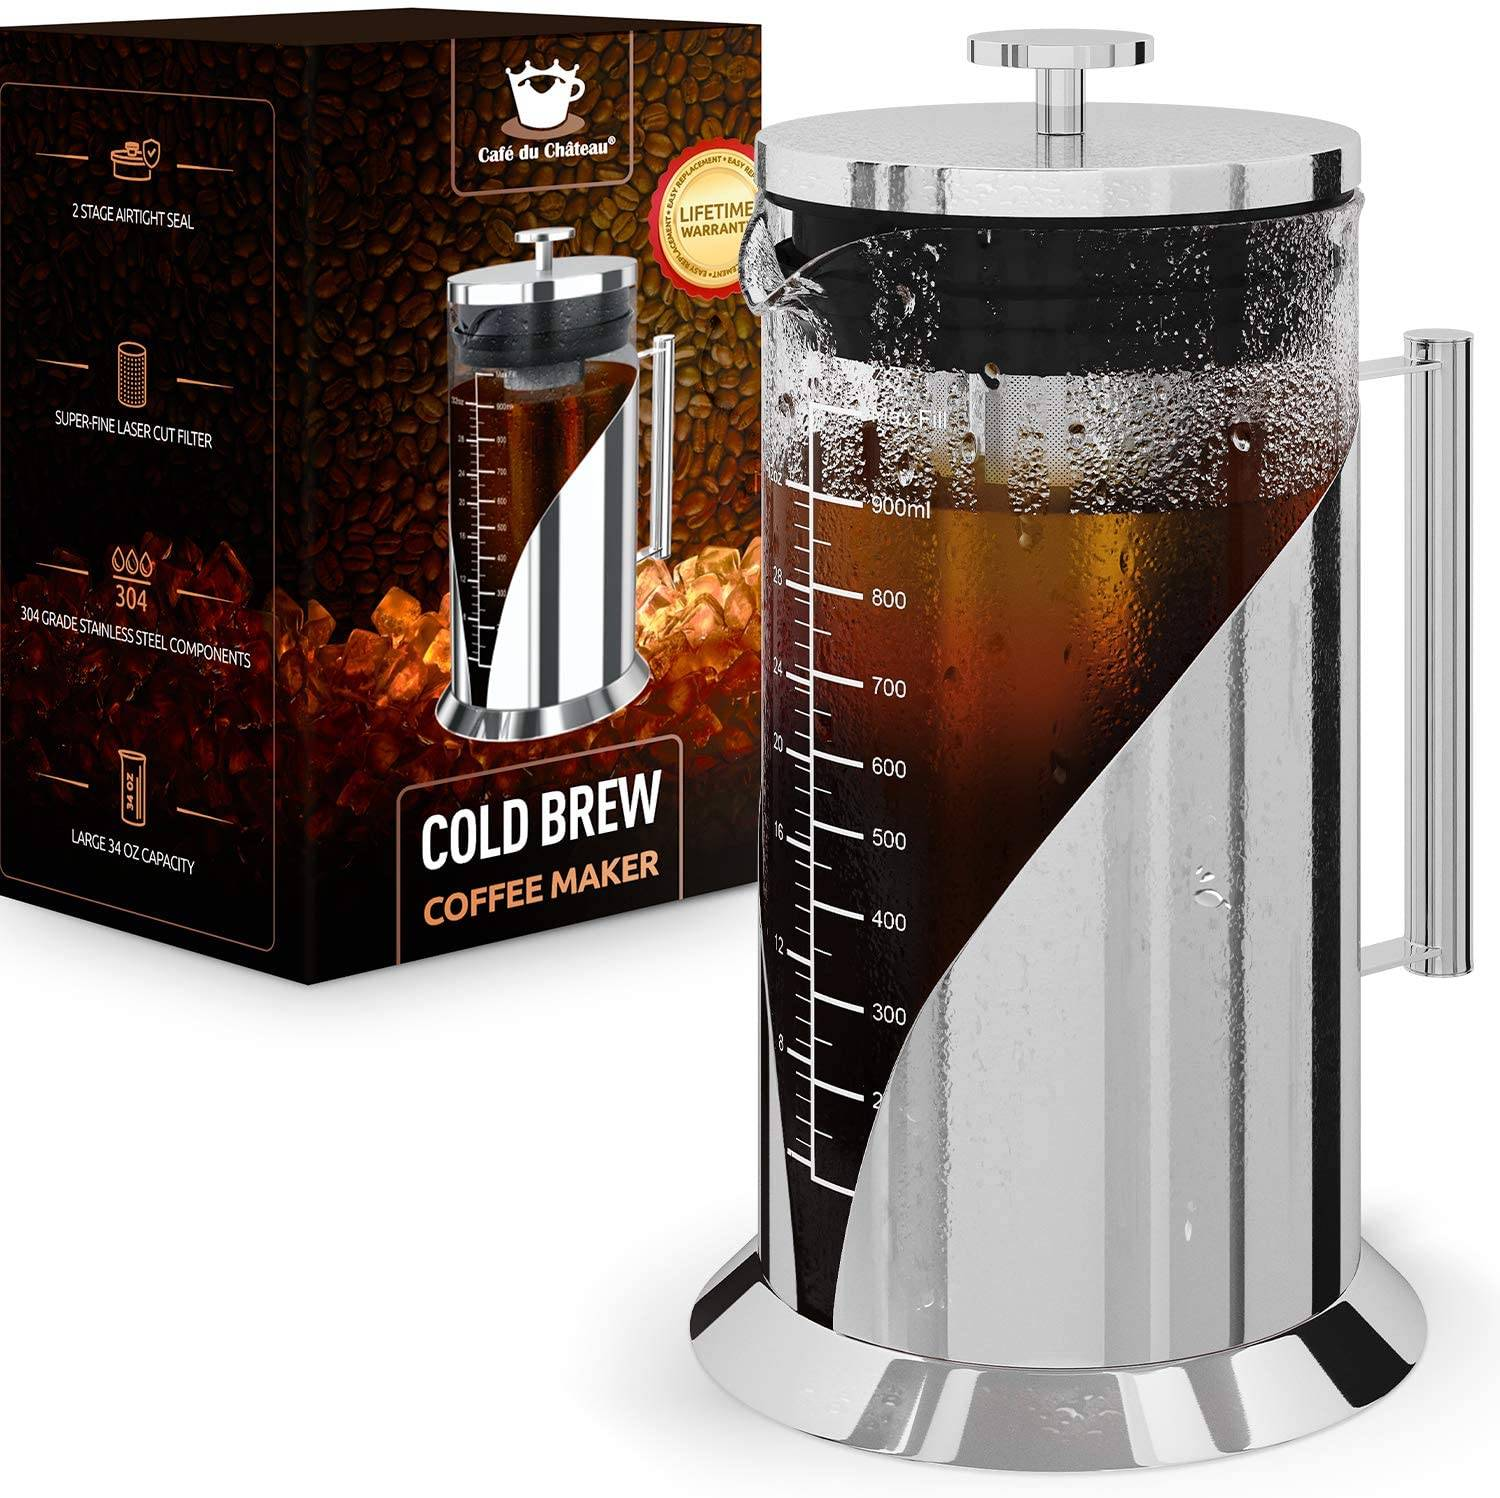 Cafe du Chateau Cold Brew Coffee Maker